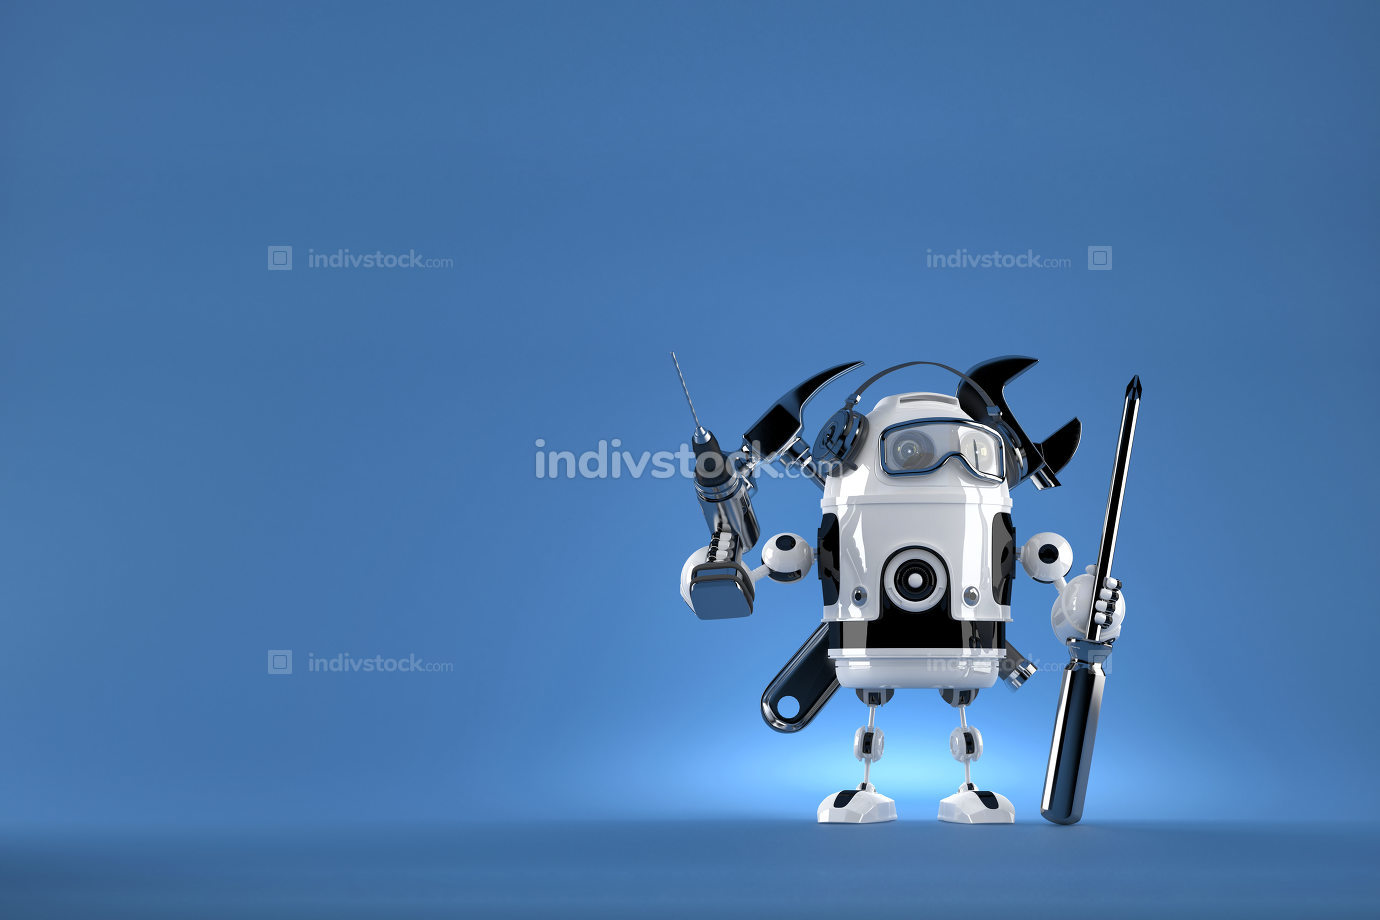 Robot worker. Contains clipping path